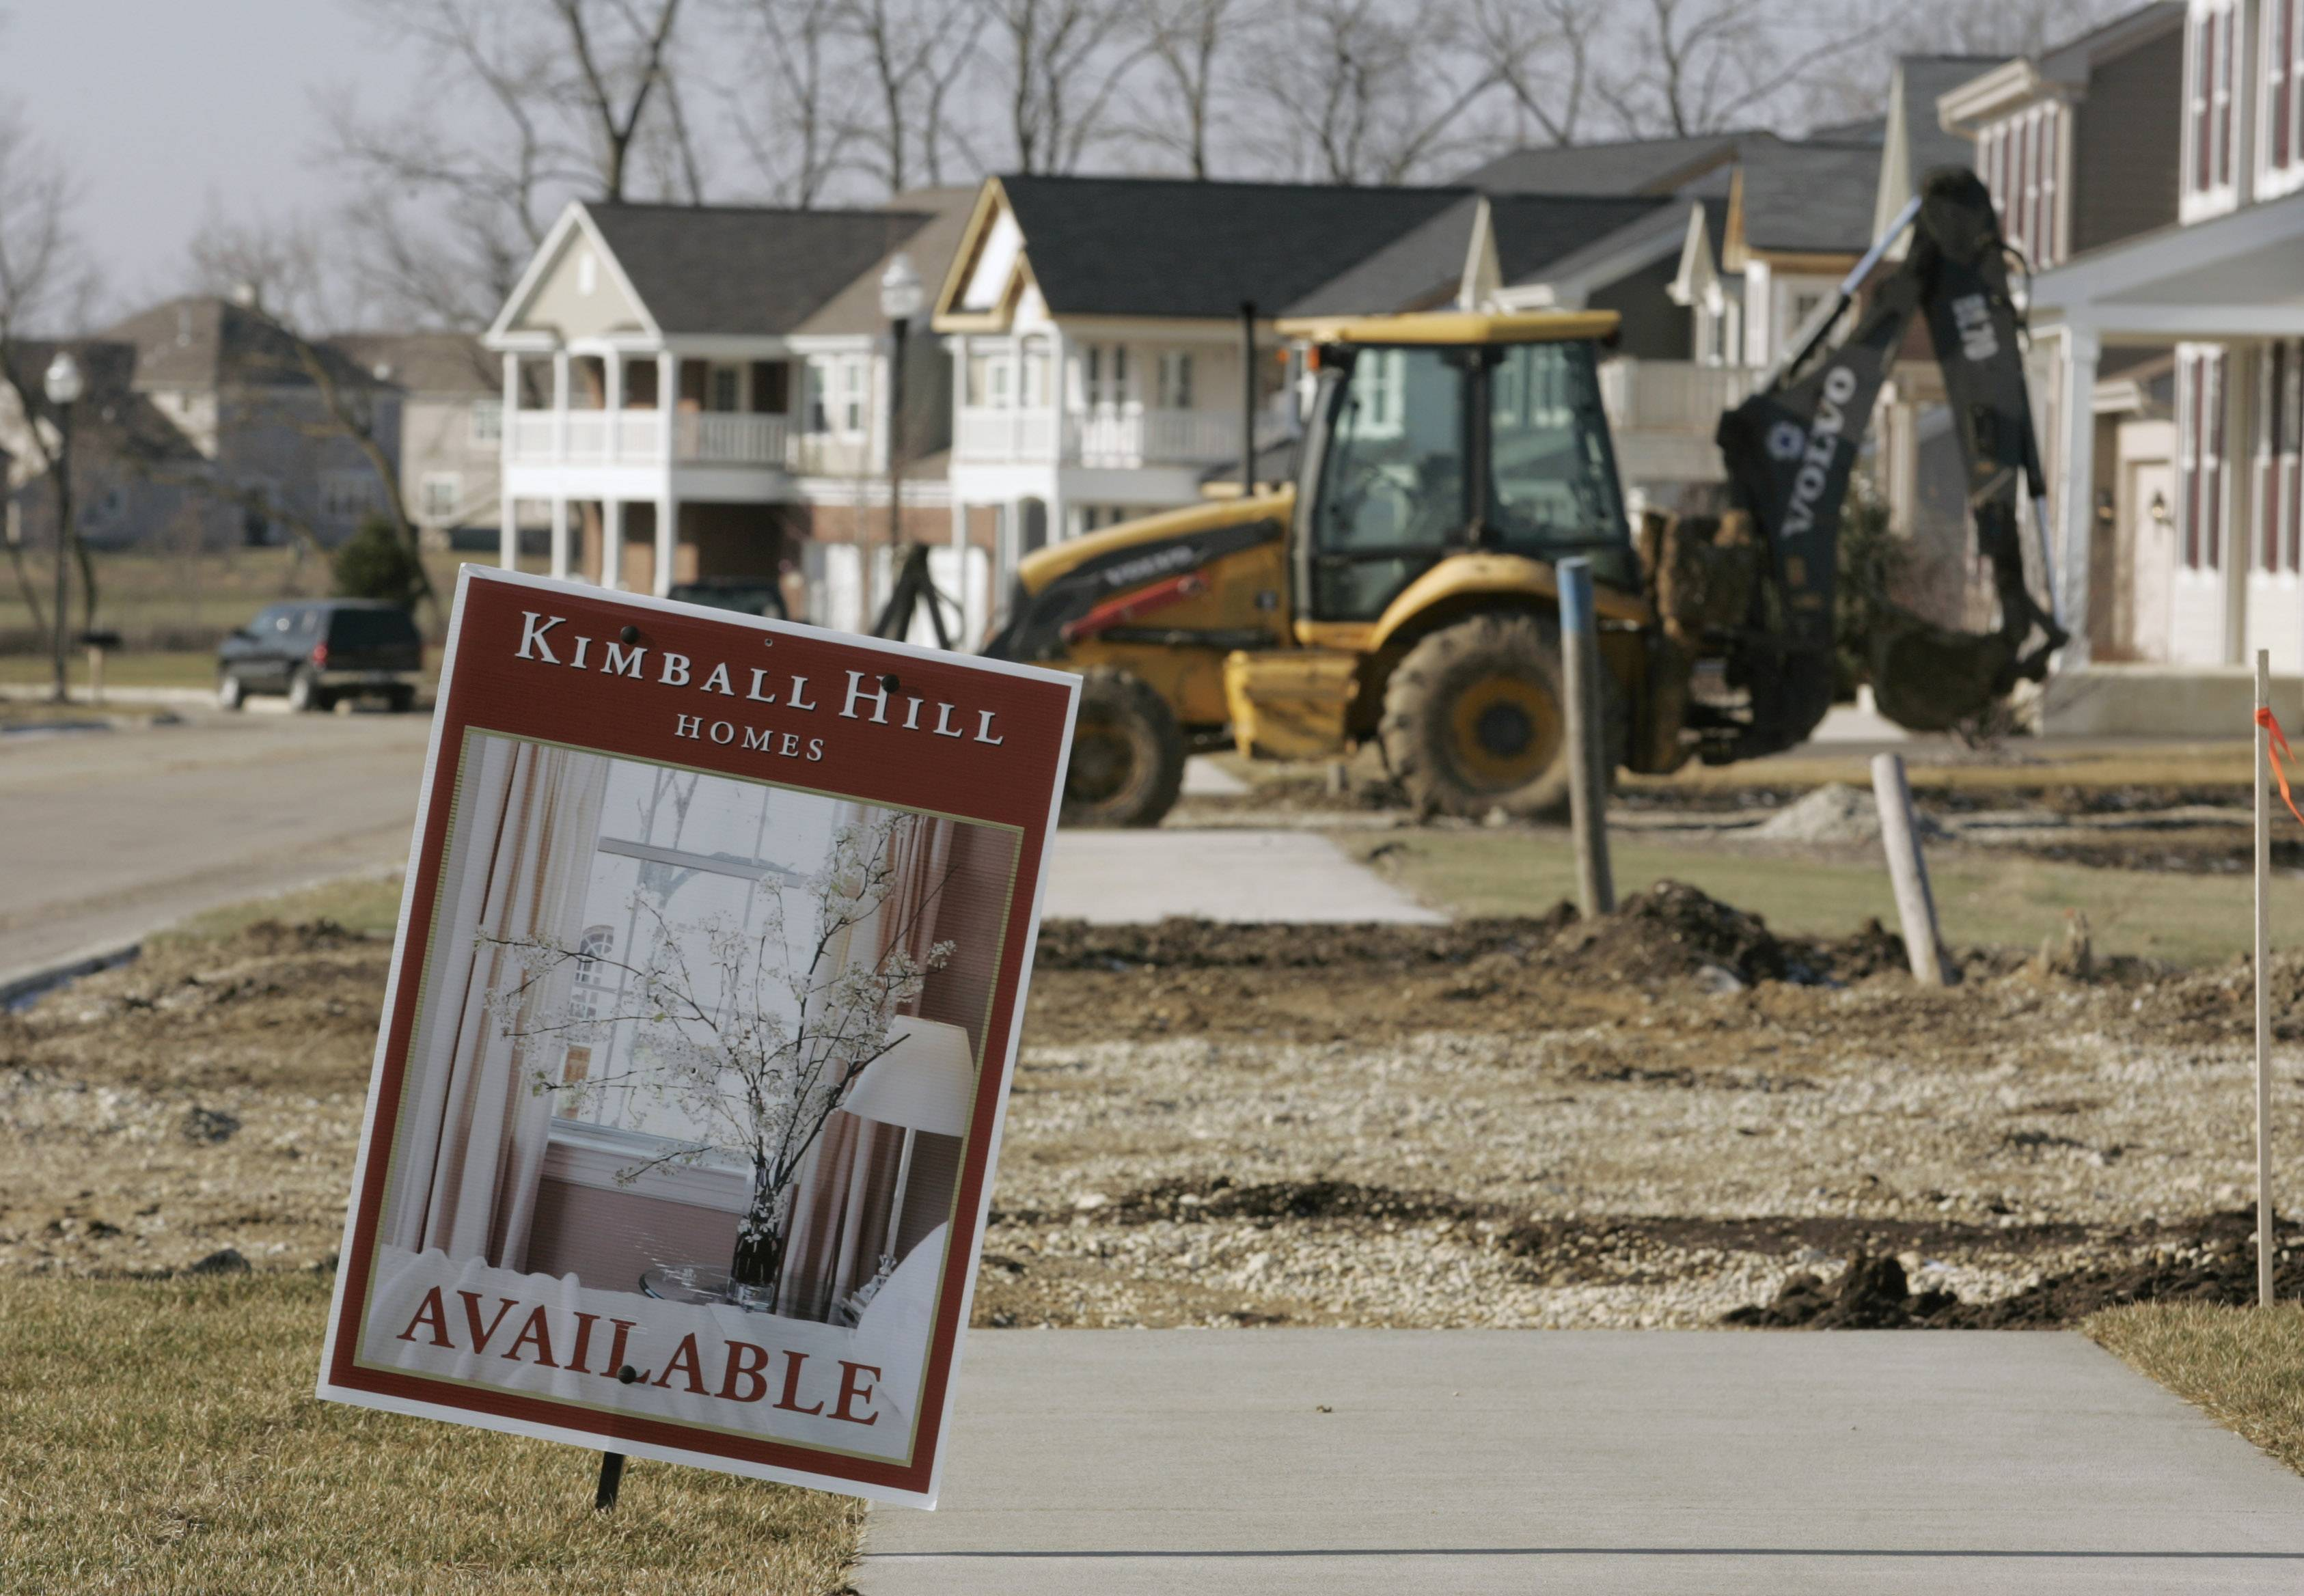 Archaic tax formula leaves most suburbs wanting more